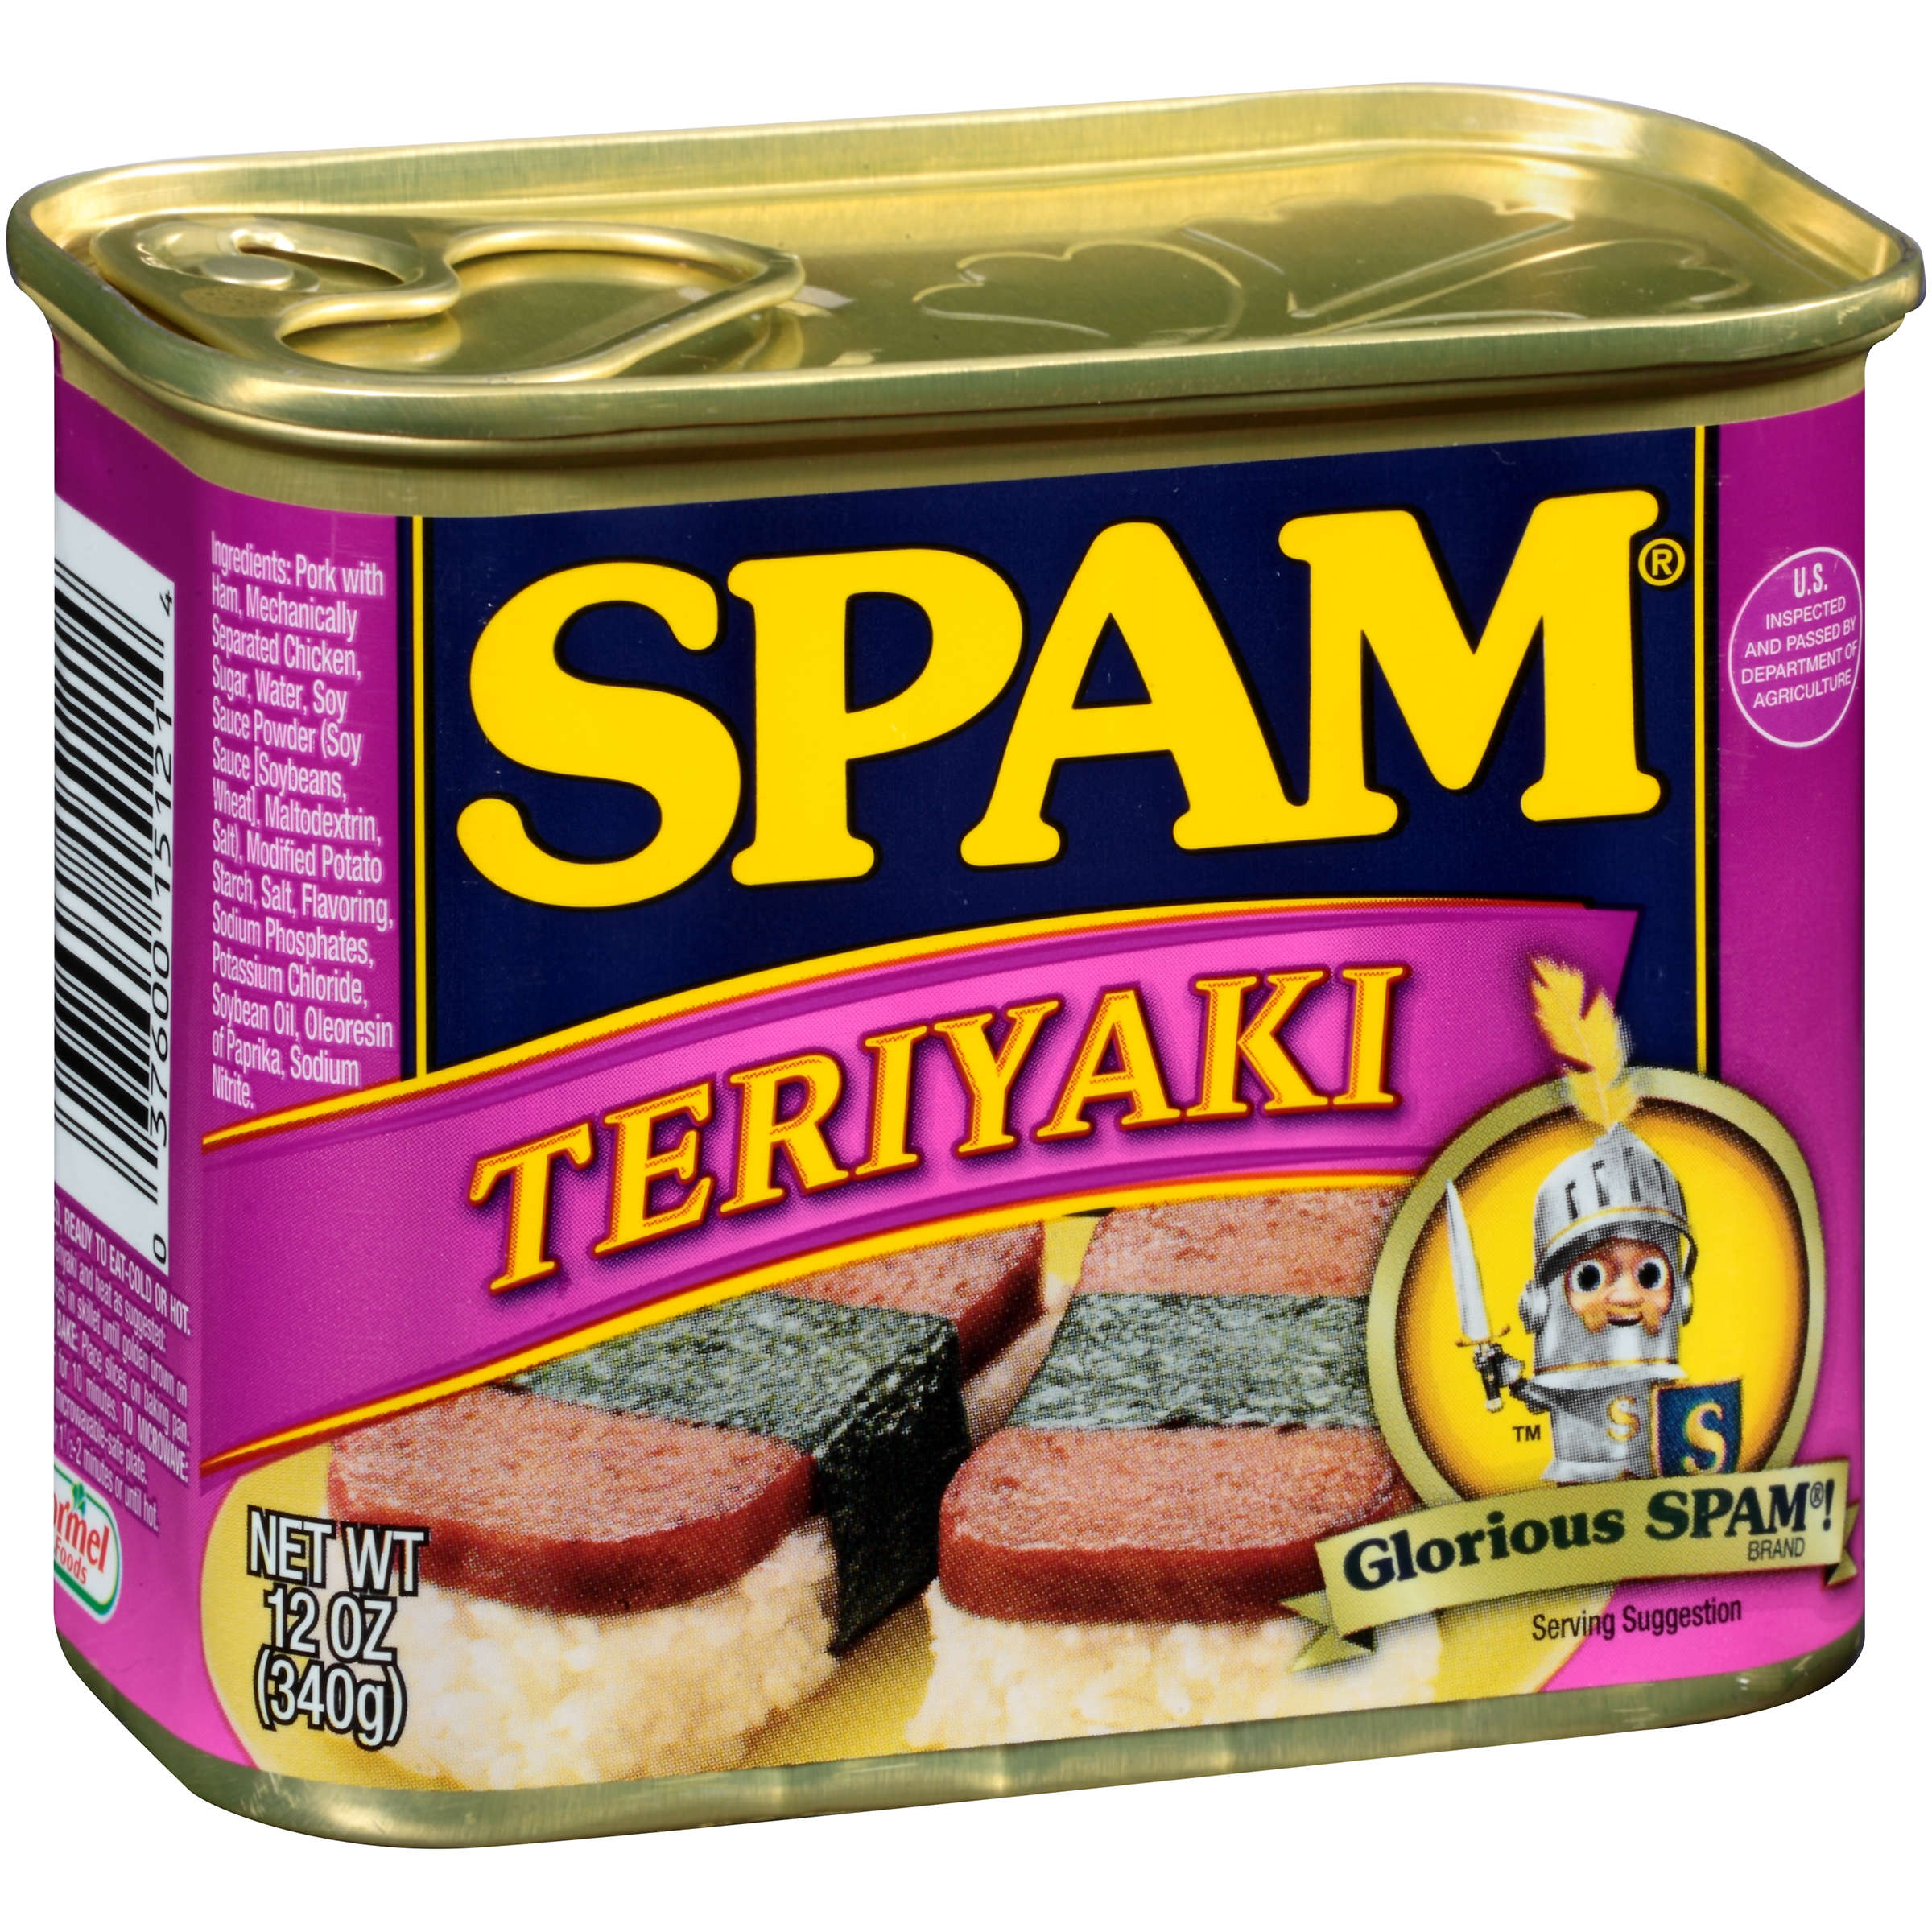 (2 Pack) SPAM Teriyaki Canned Meat, 12 oz